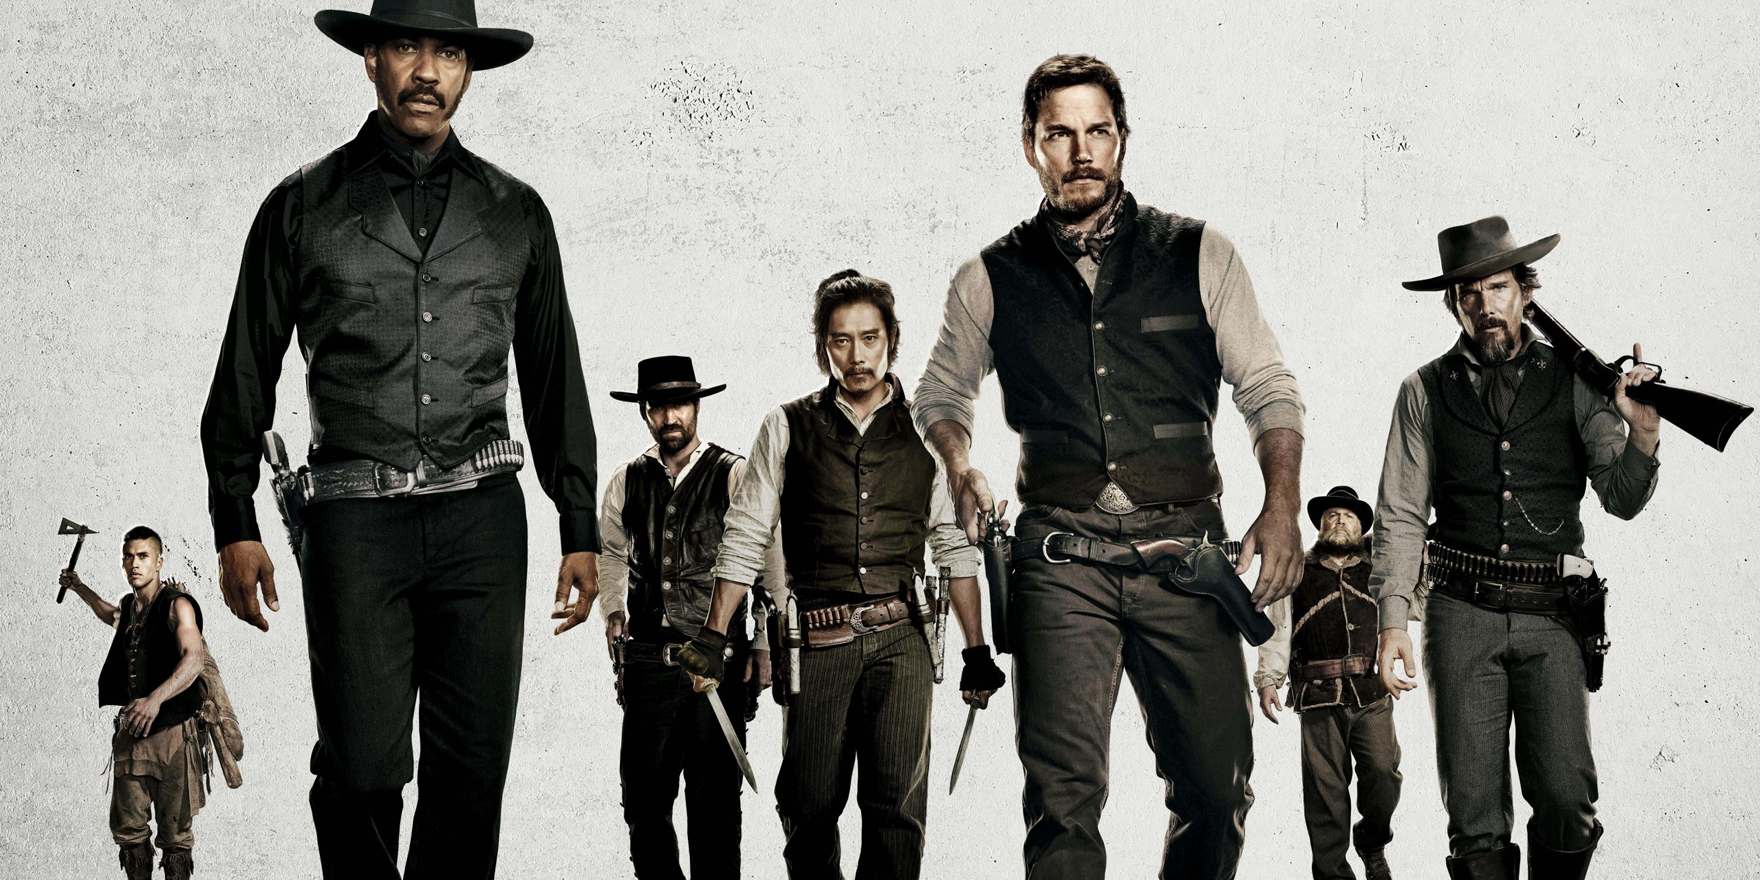 The Magnificent Seven - Header Image